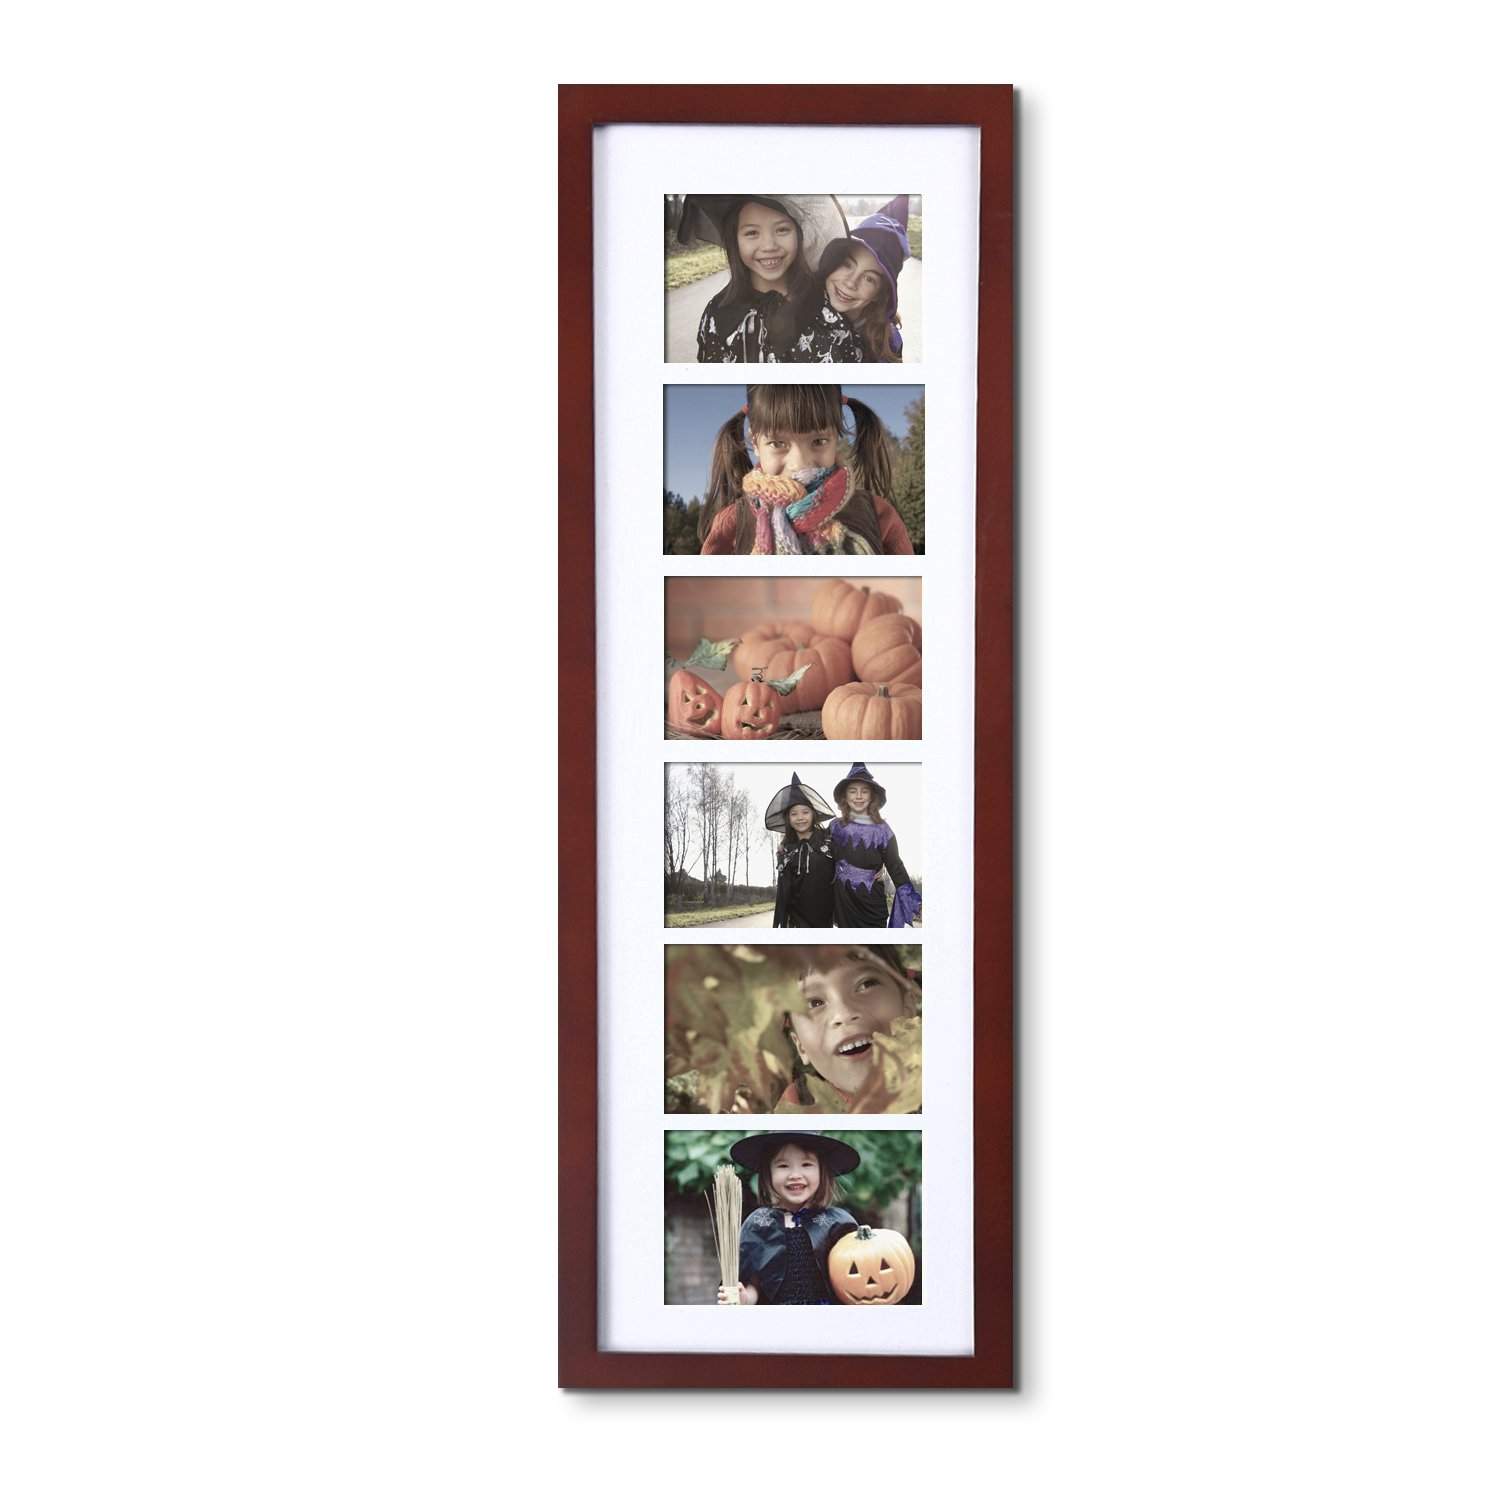 Adeco 3 Openings Black Wood Wall hanging Family Photo Picture Frame With White Mat - Made to Display Three 4x6 Photos PF0284